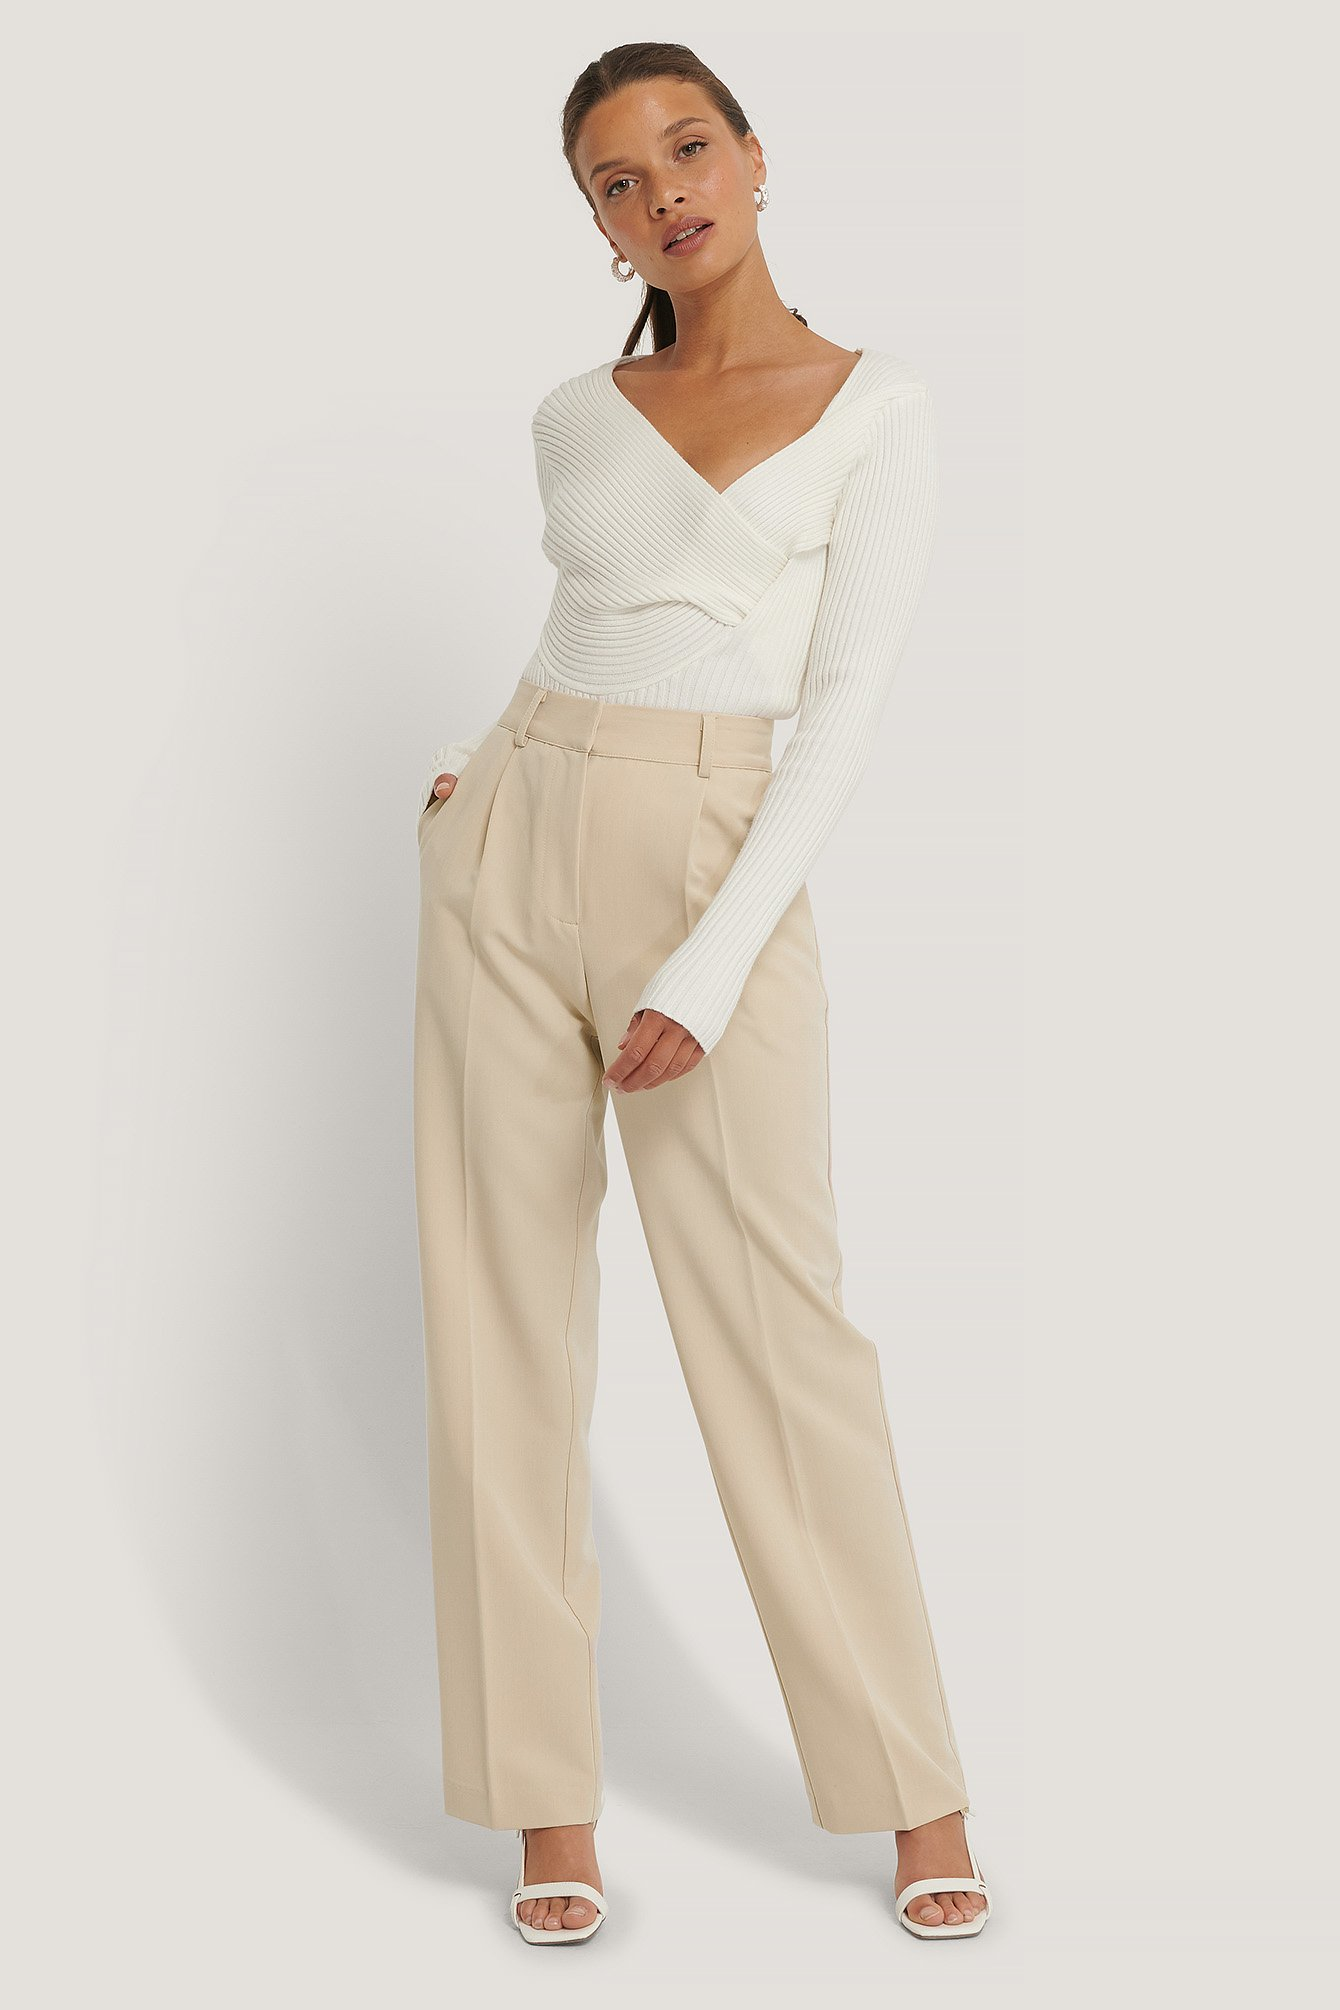 Beige Mid Rise Suit Pants